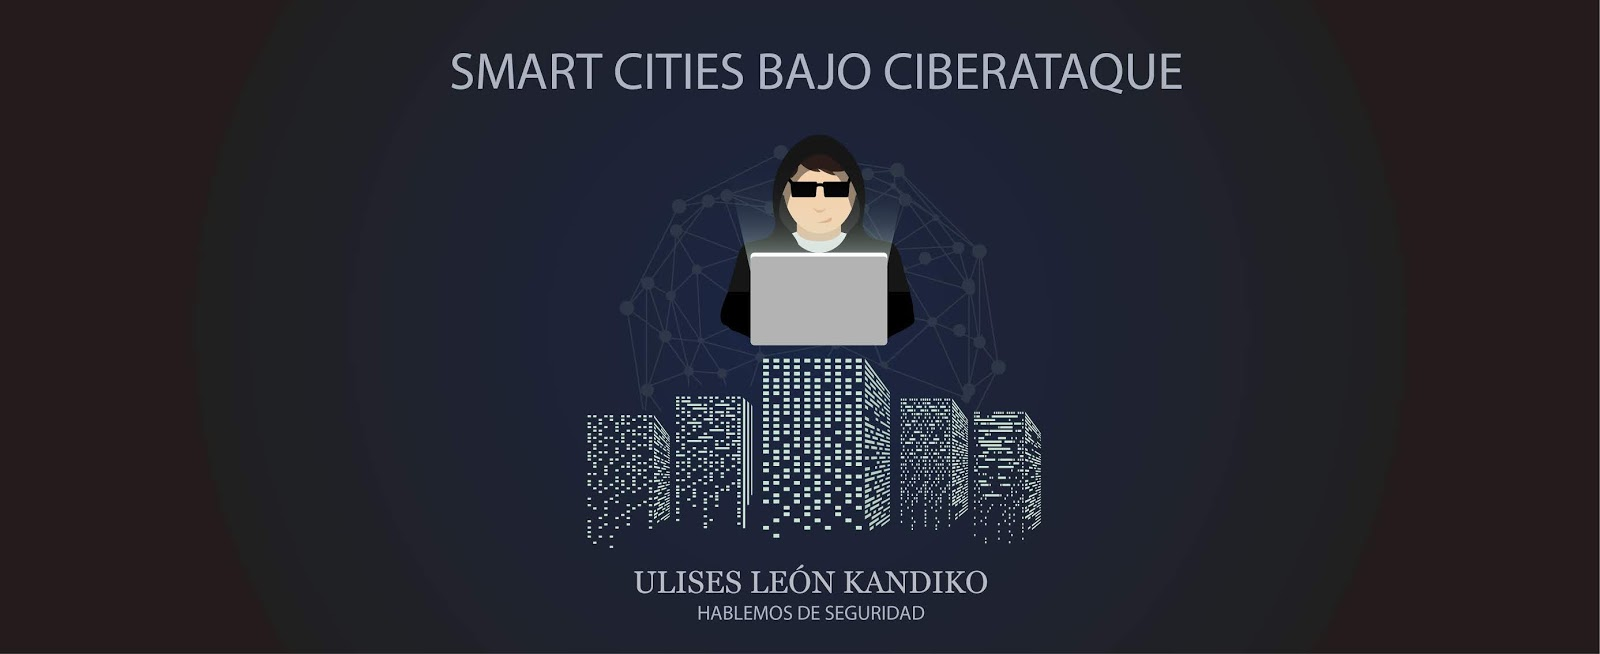 SMART CITIES BAJO CIBERATAQUE @Uliman73